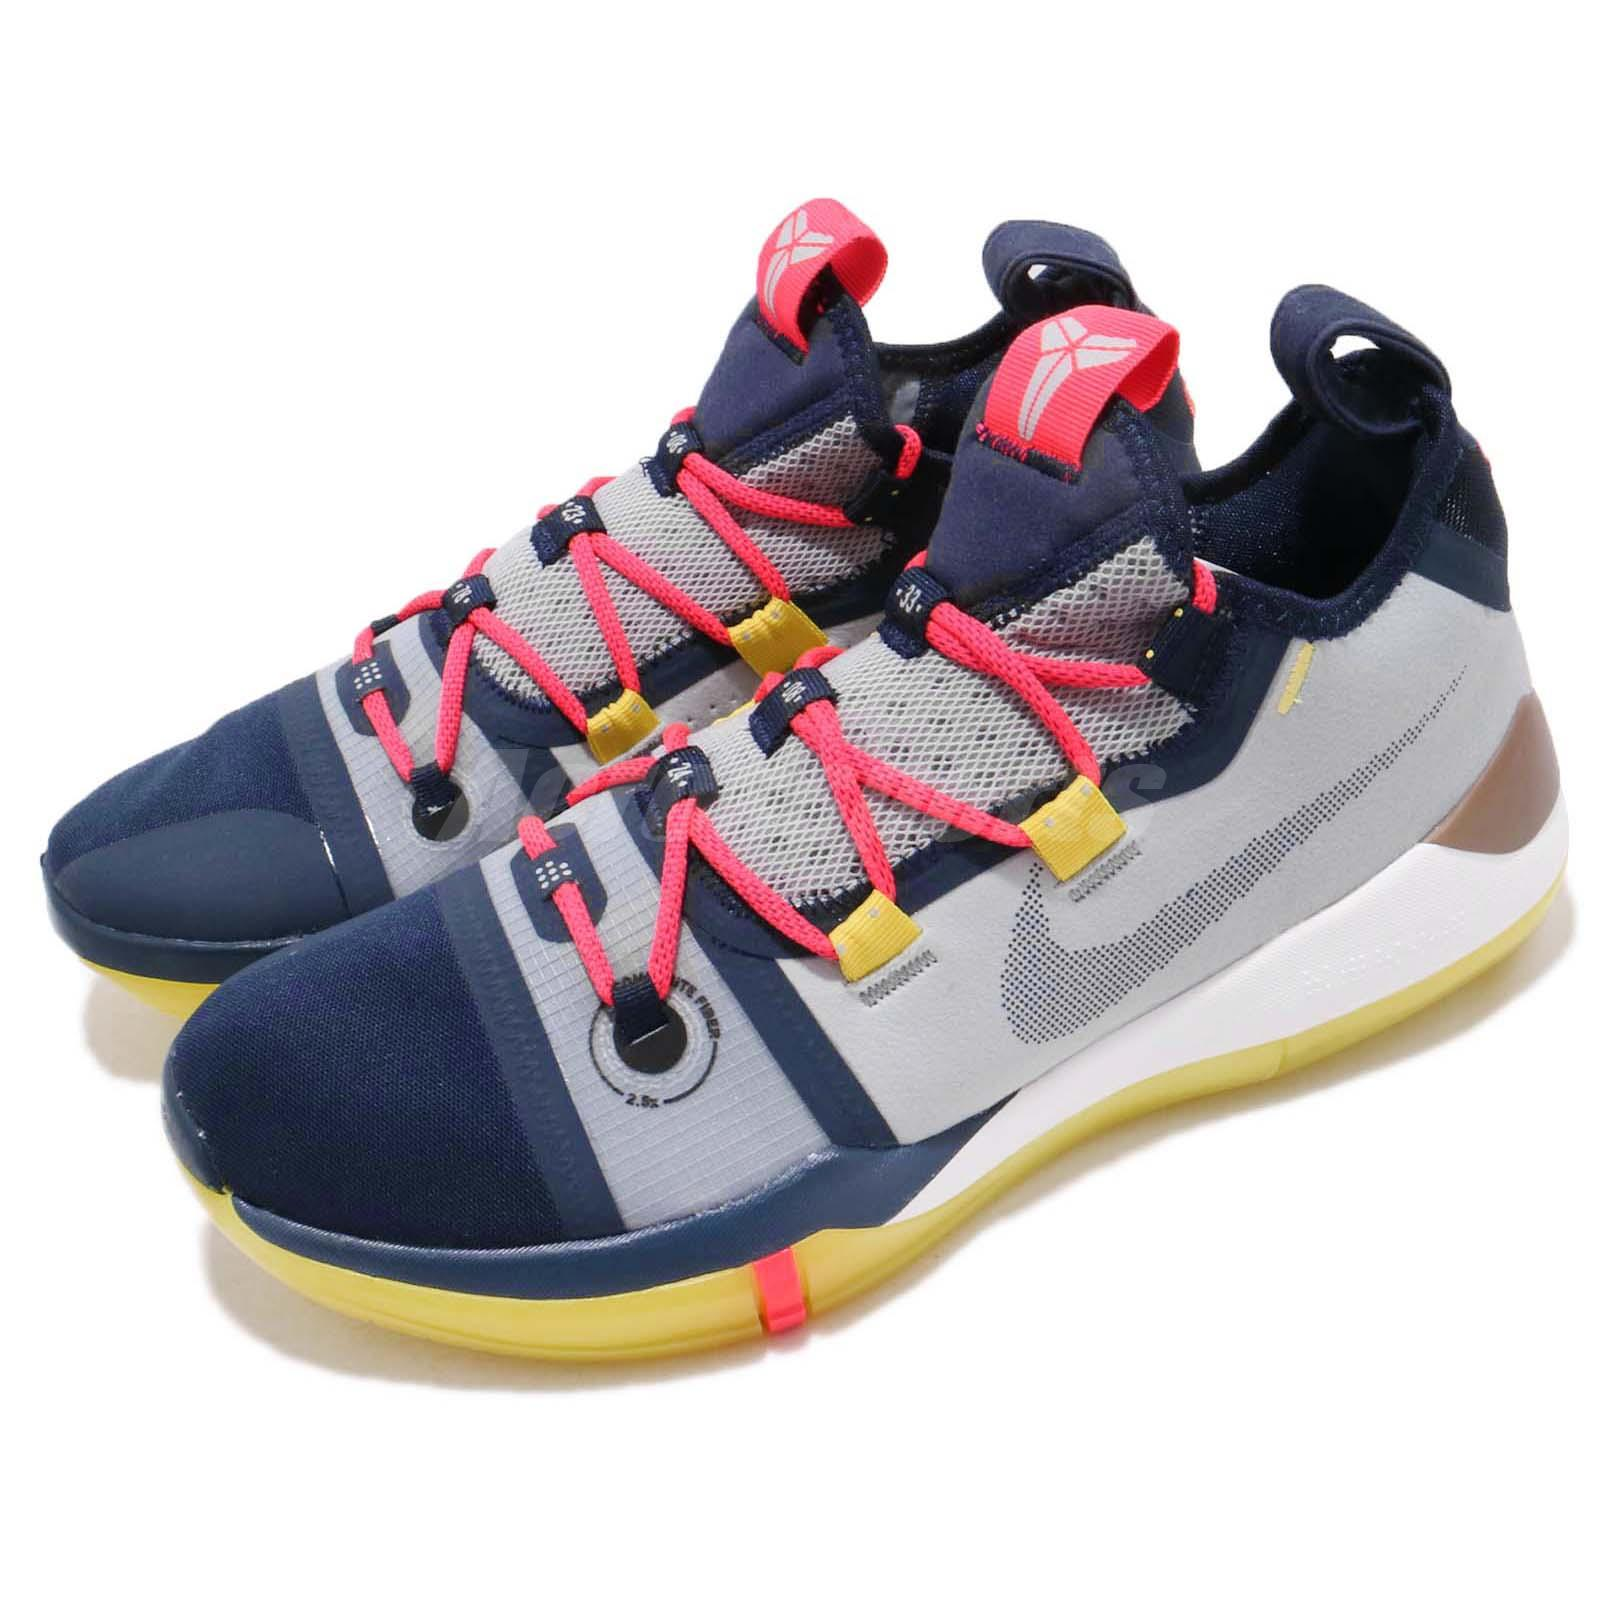 7dacbf22401e Details about Nike KOBE AD Mamba Day A.D. EP Sail Multi-Color Mens  Basketball Shoes AV3556-100